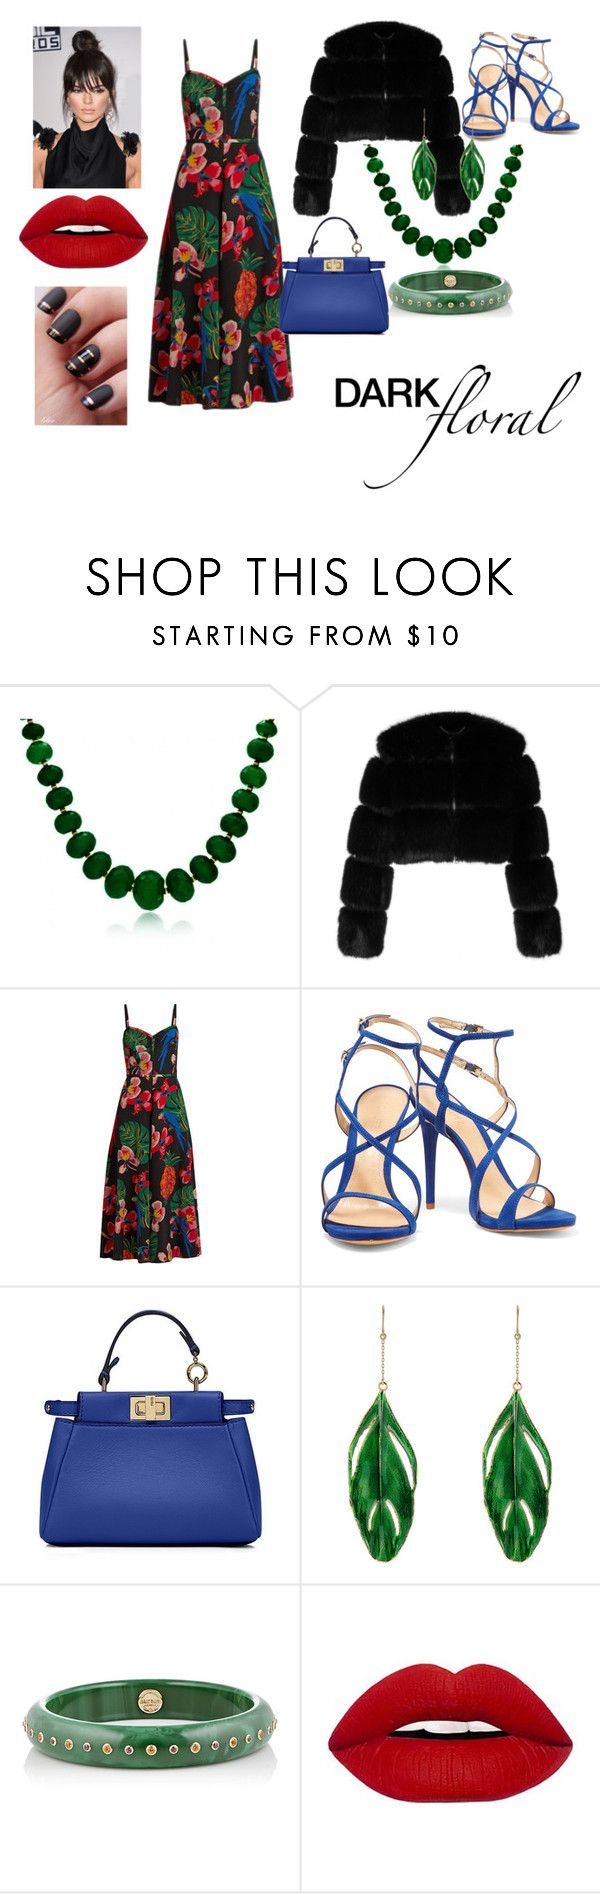 """Dark Floral Contest"" by lolouise on Polyvore featuring Bling Jewelry, Givenchy, Valentino, Schutz, Fendi, Aurélie Bidermann and Mark Davis"